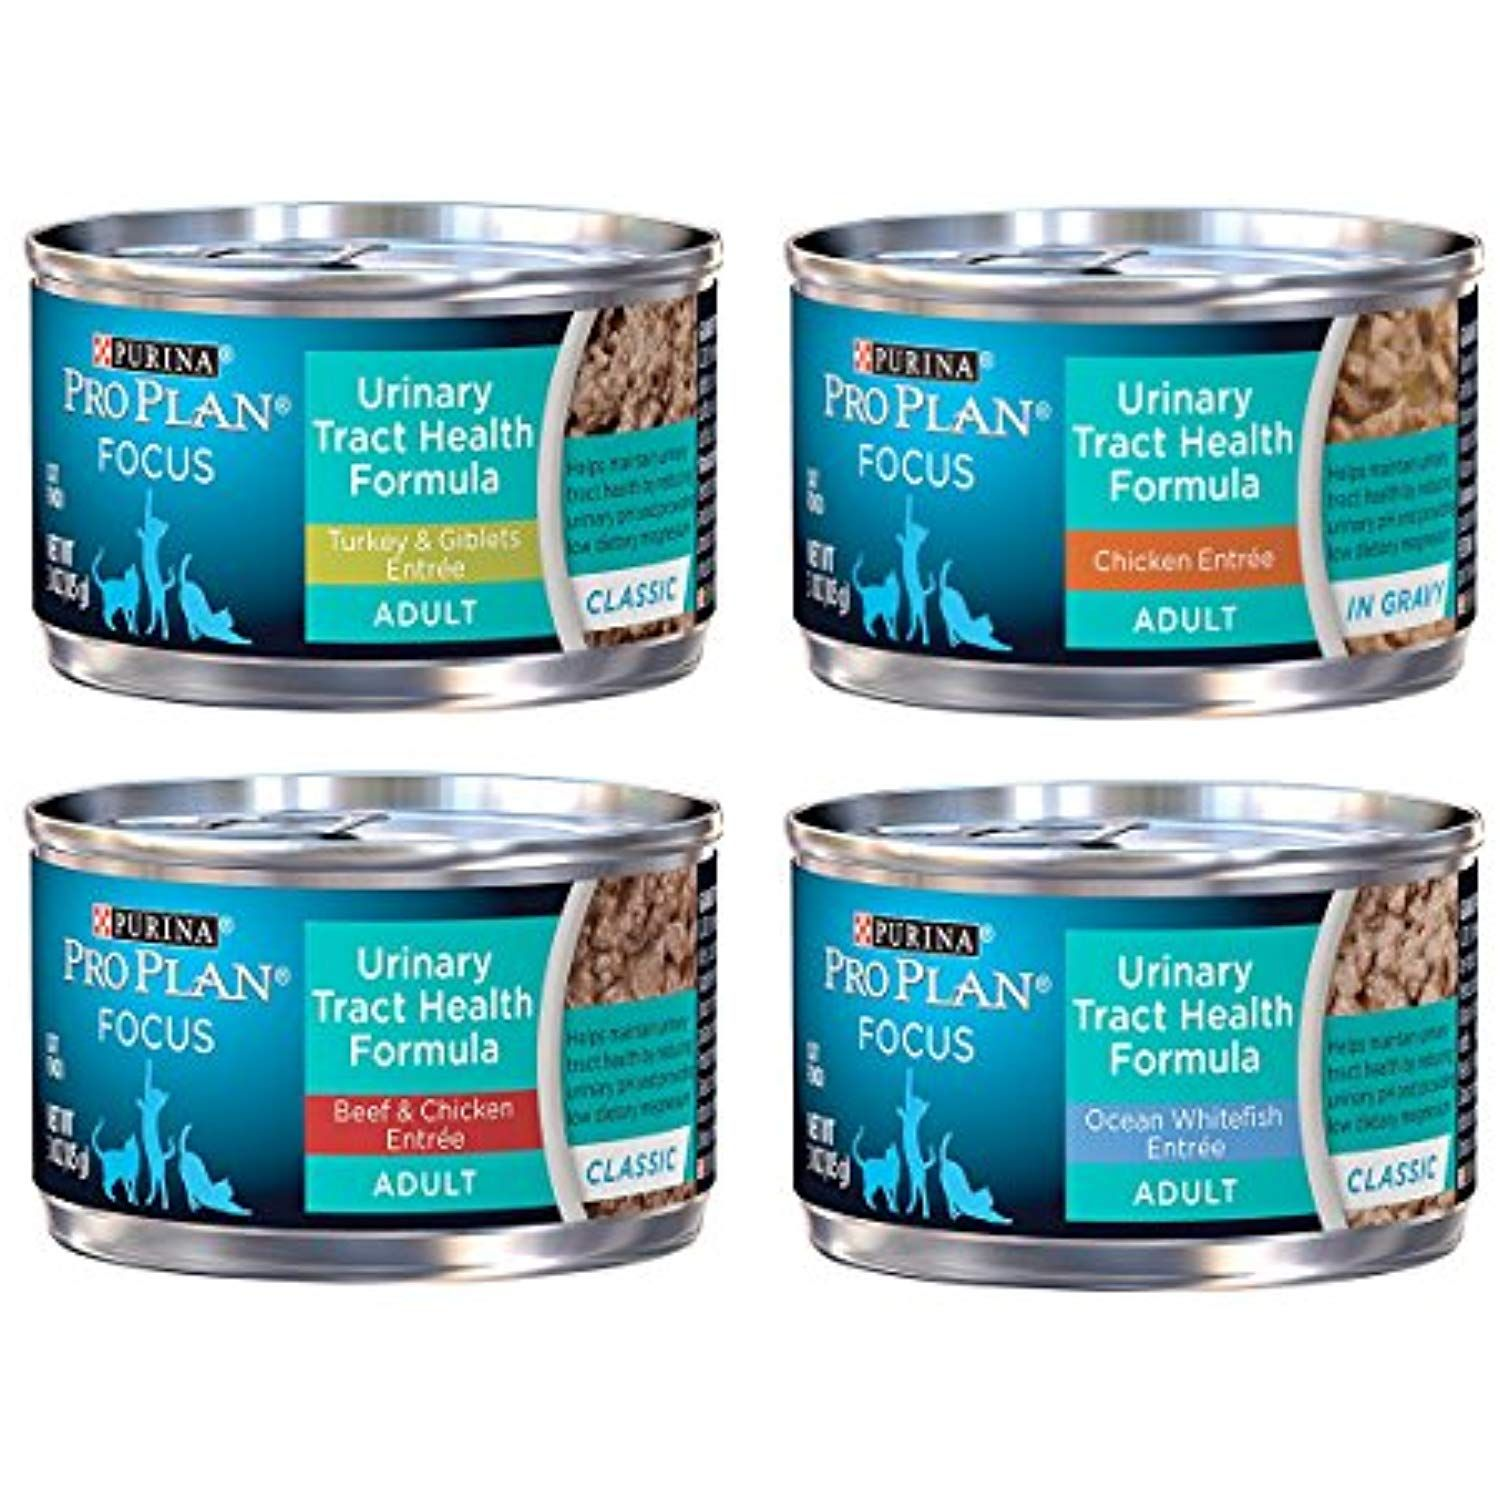 Purina Pro Plan Focus Wet Cat Food Urinary Tract Health Uth Variety Pack 4 Flavors 3 Ounce Cans 12 Tot Purina Pro Plan Urinary Tract Cat Food Wet Cat Food